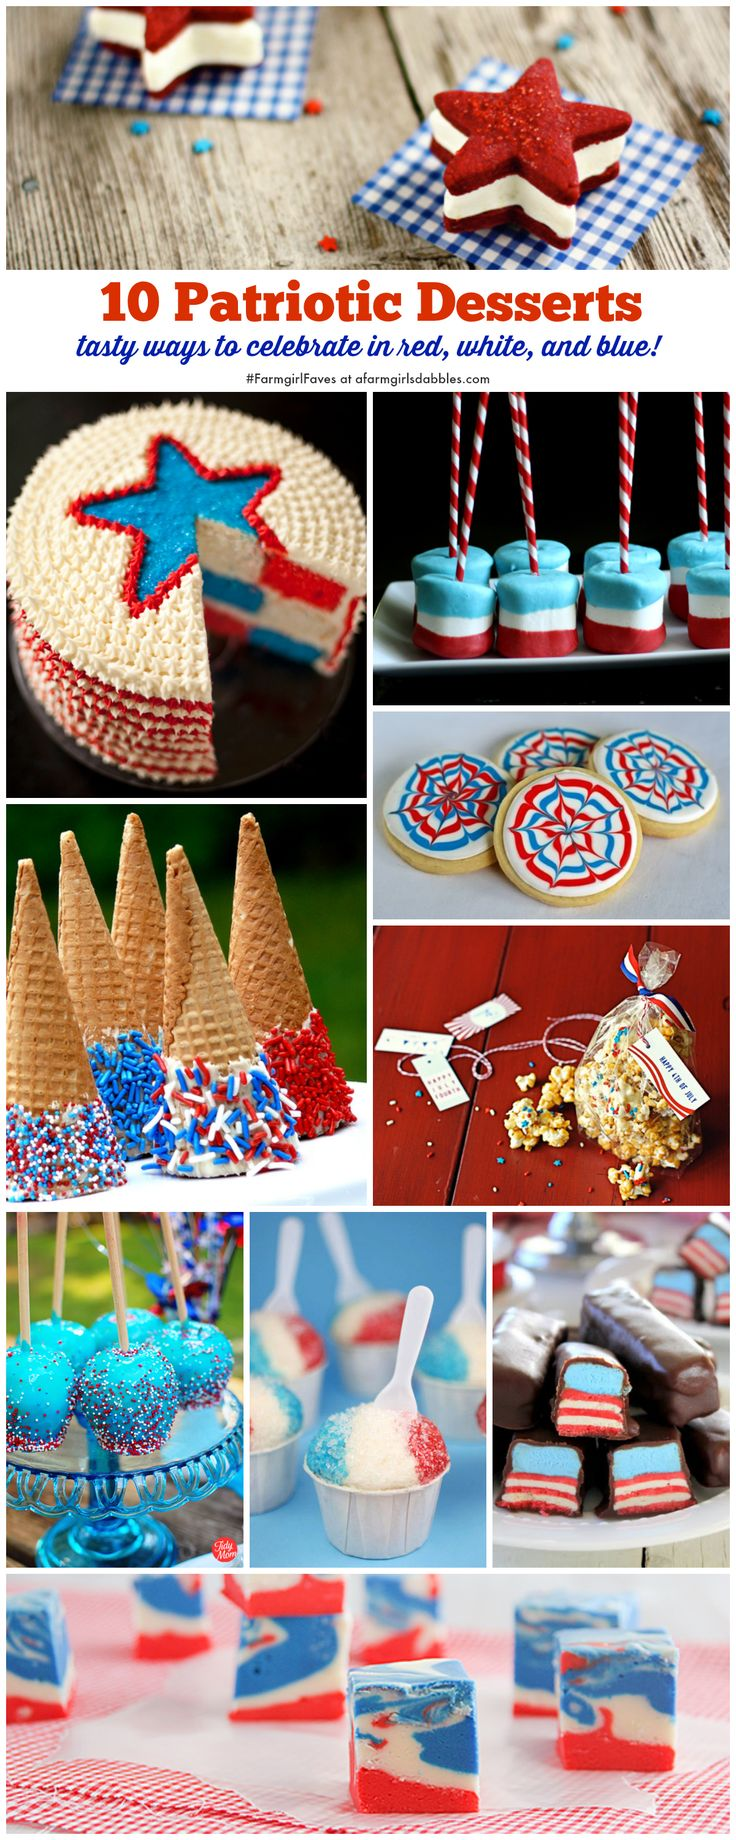 memorial day treats recipes